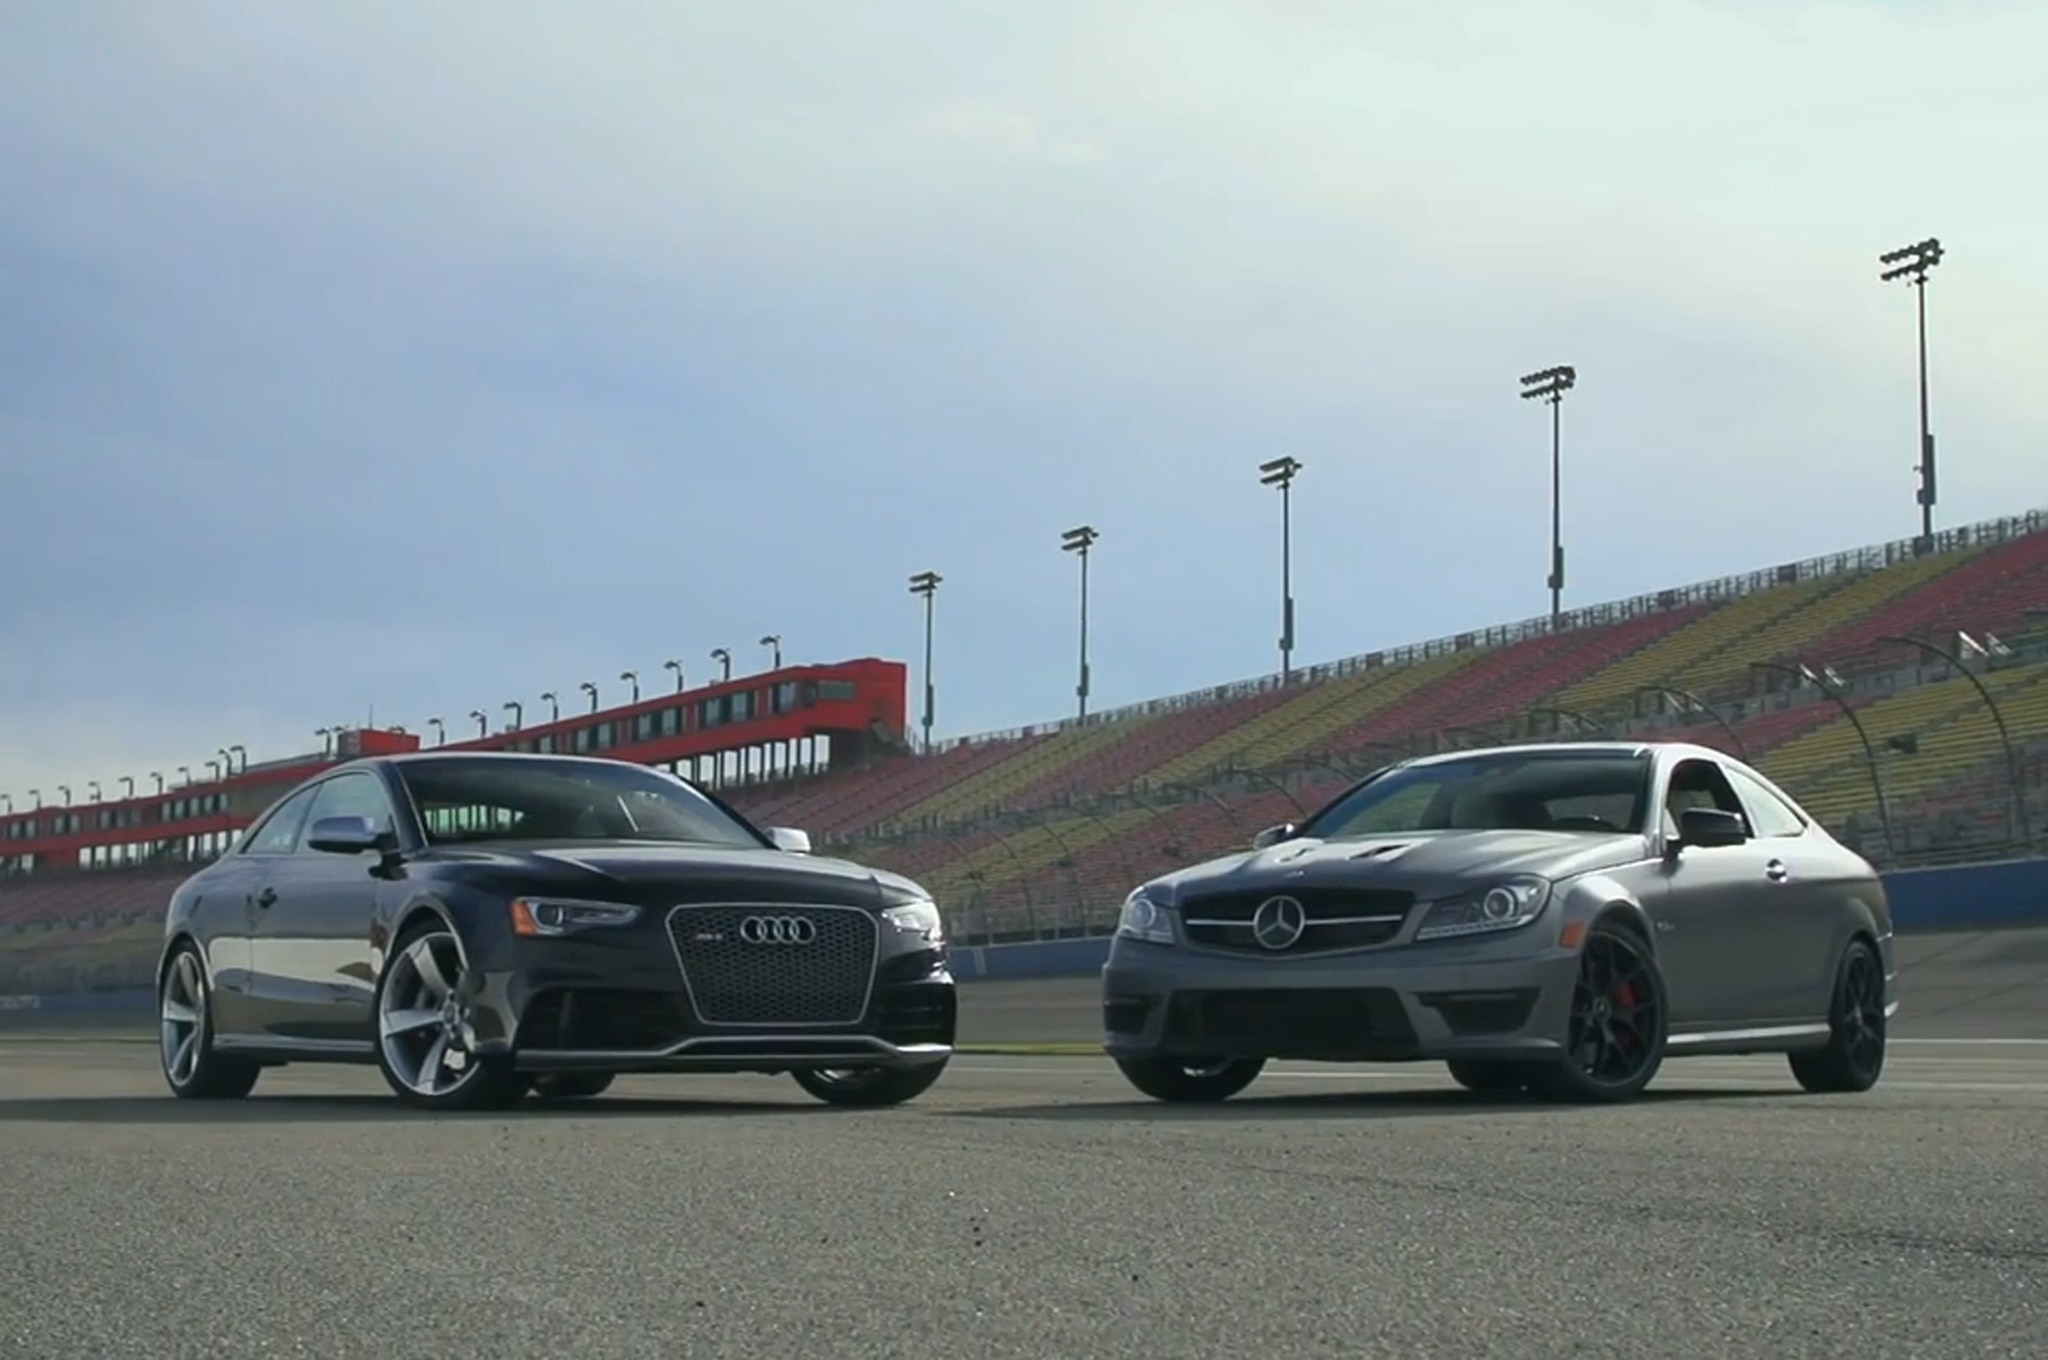 2014 Mercedes Benz C63 Amg 507 Coupe And 2014 Audi Rs5 Coupe